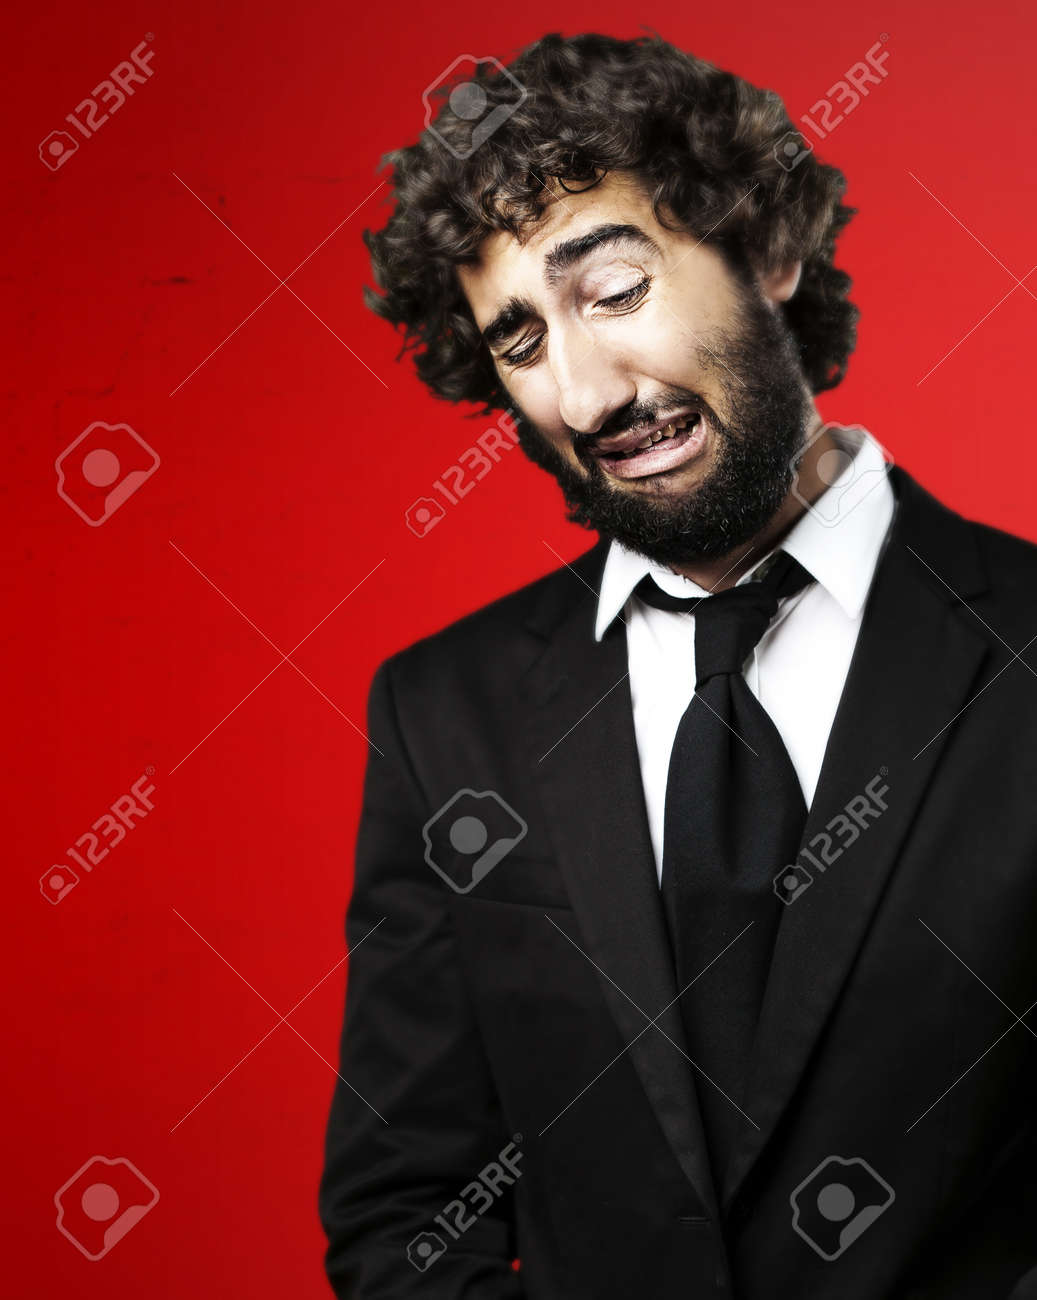 portrait of young business man with suit crying against a red background Stock Photo - 10550362